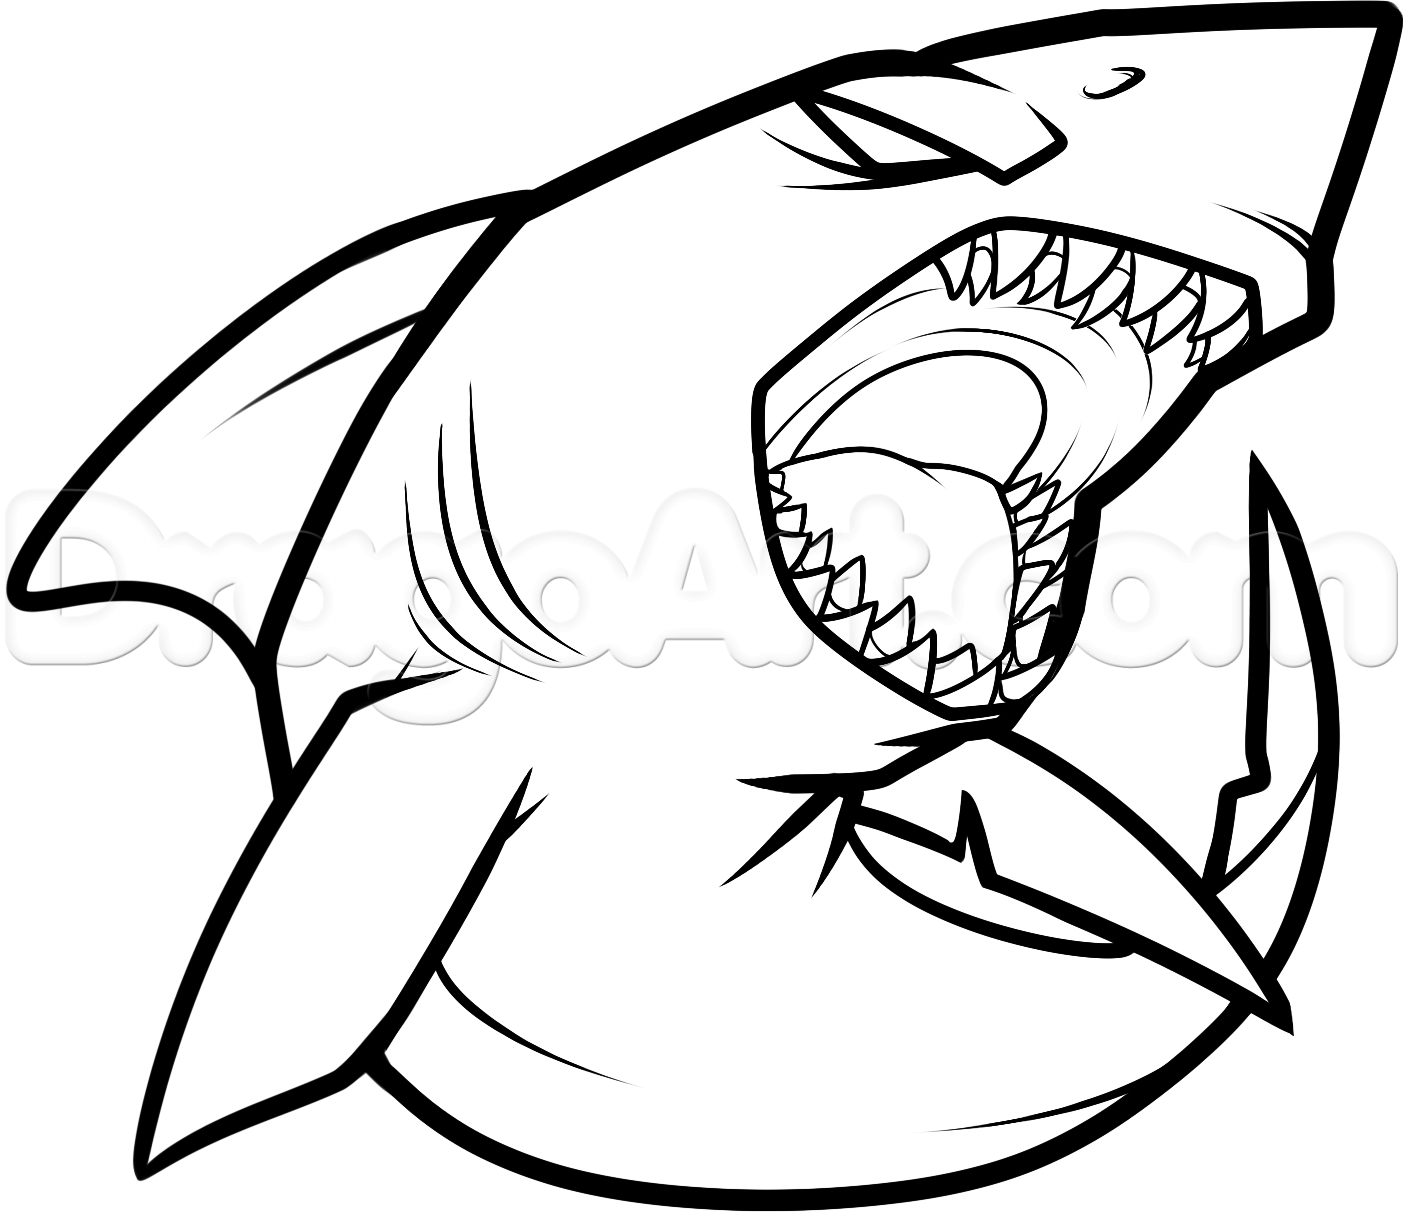 1403x1212 How To Draw Megalodon Drawing And Coloring Megalodon Shark